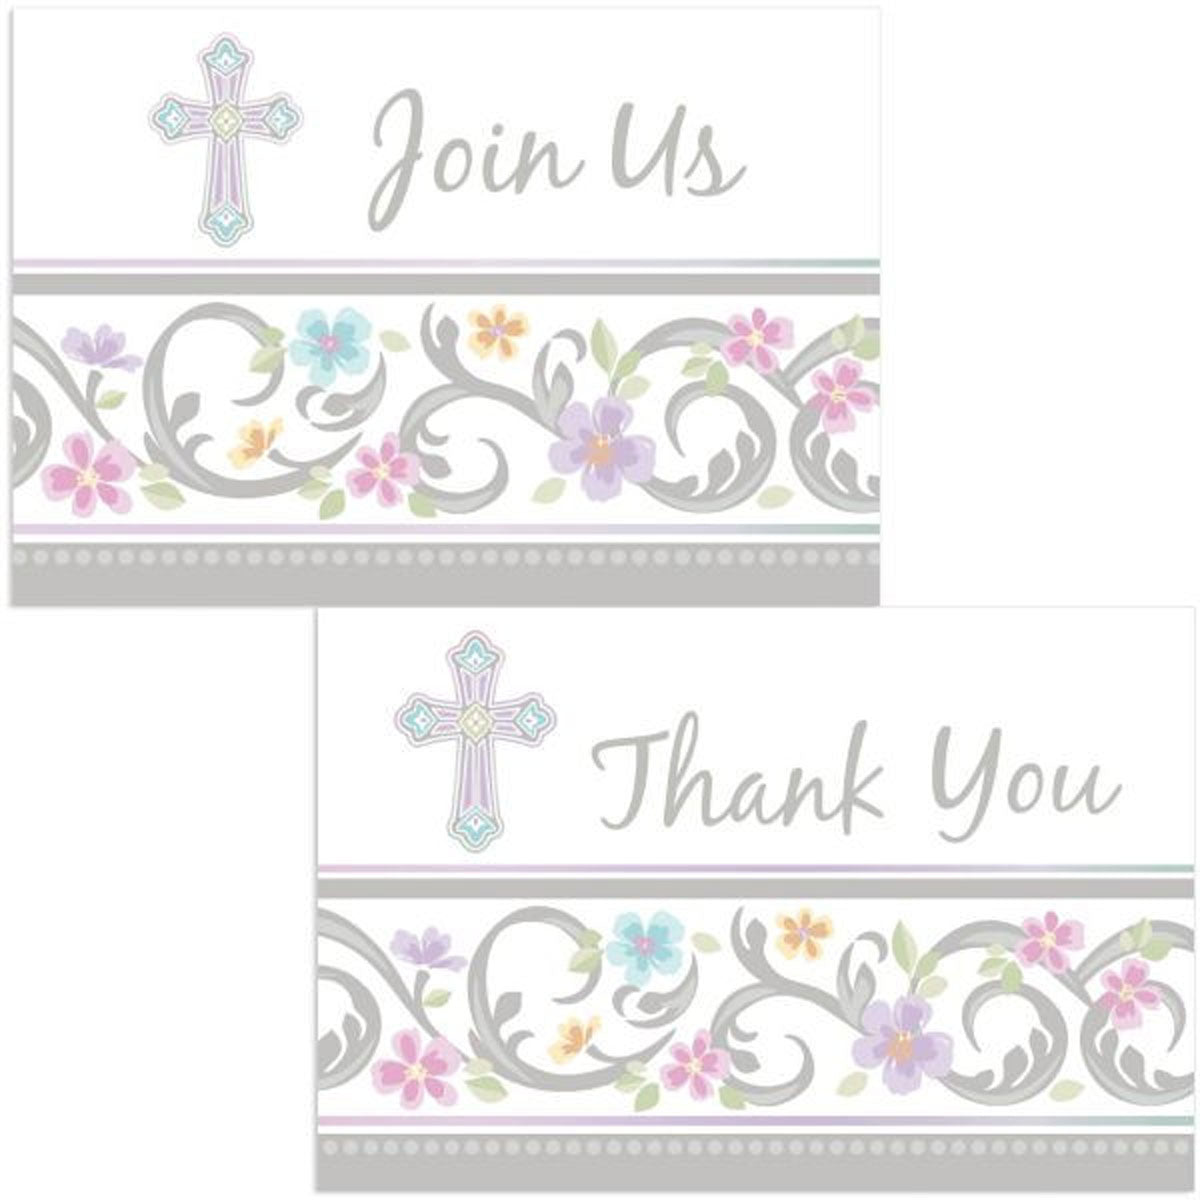 Blessed Day Invite and Thank You Cards